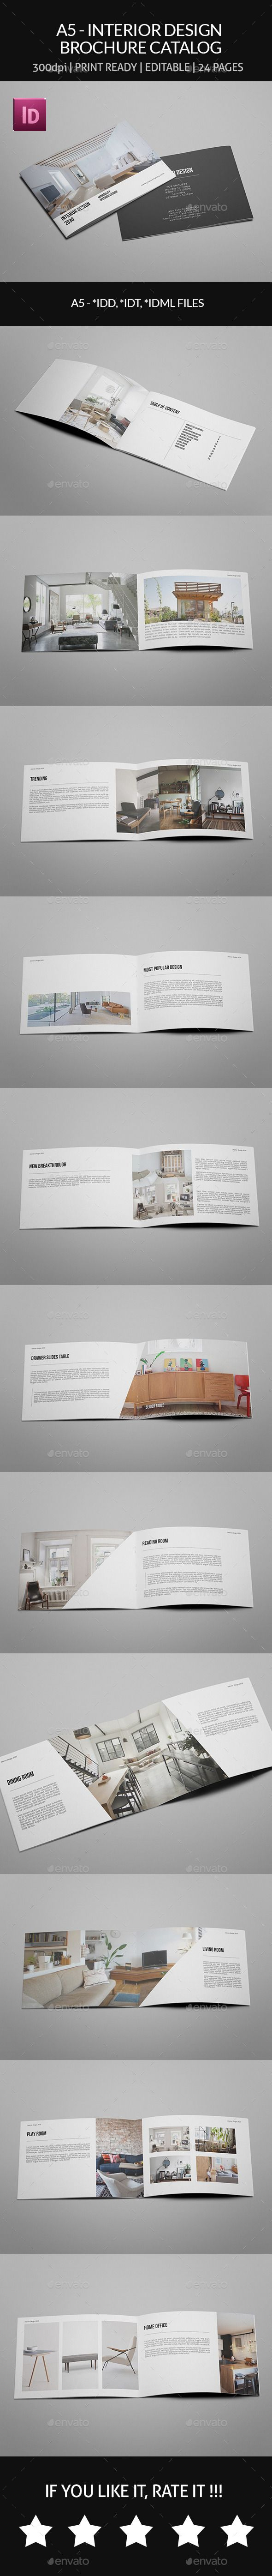 A5 Interior Design Brochure Catalog InDesign INDD Elegant Book O Available Here